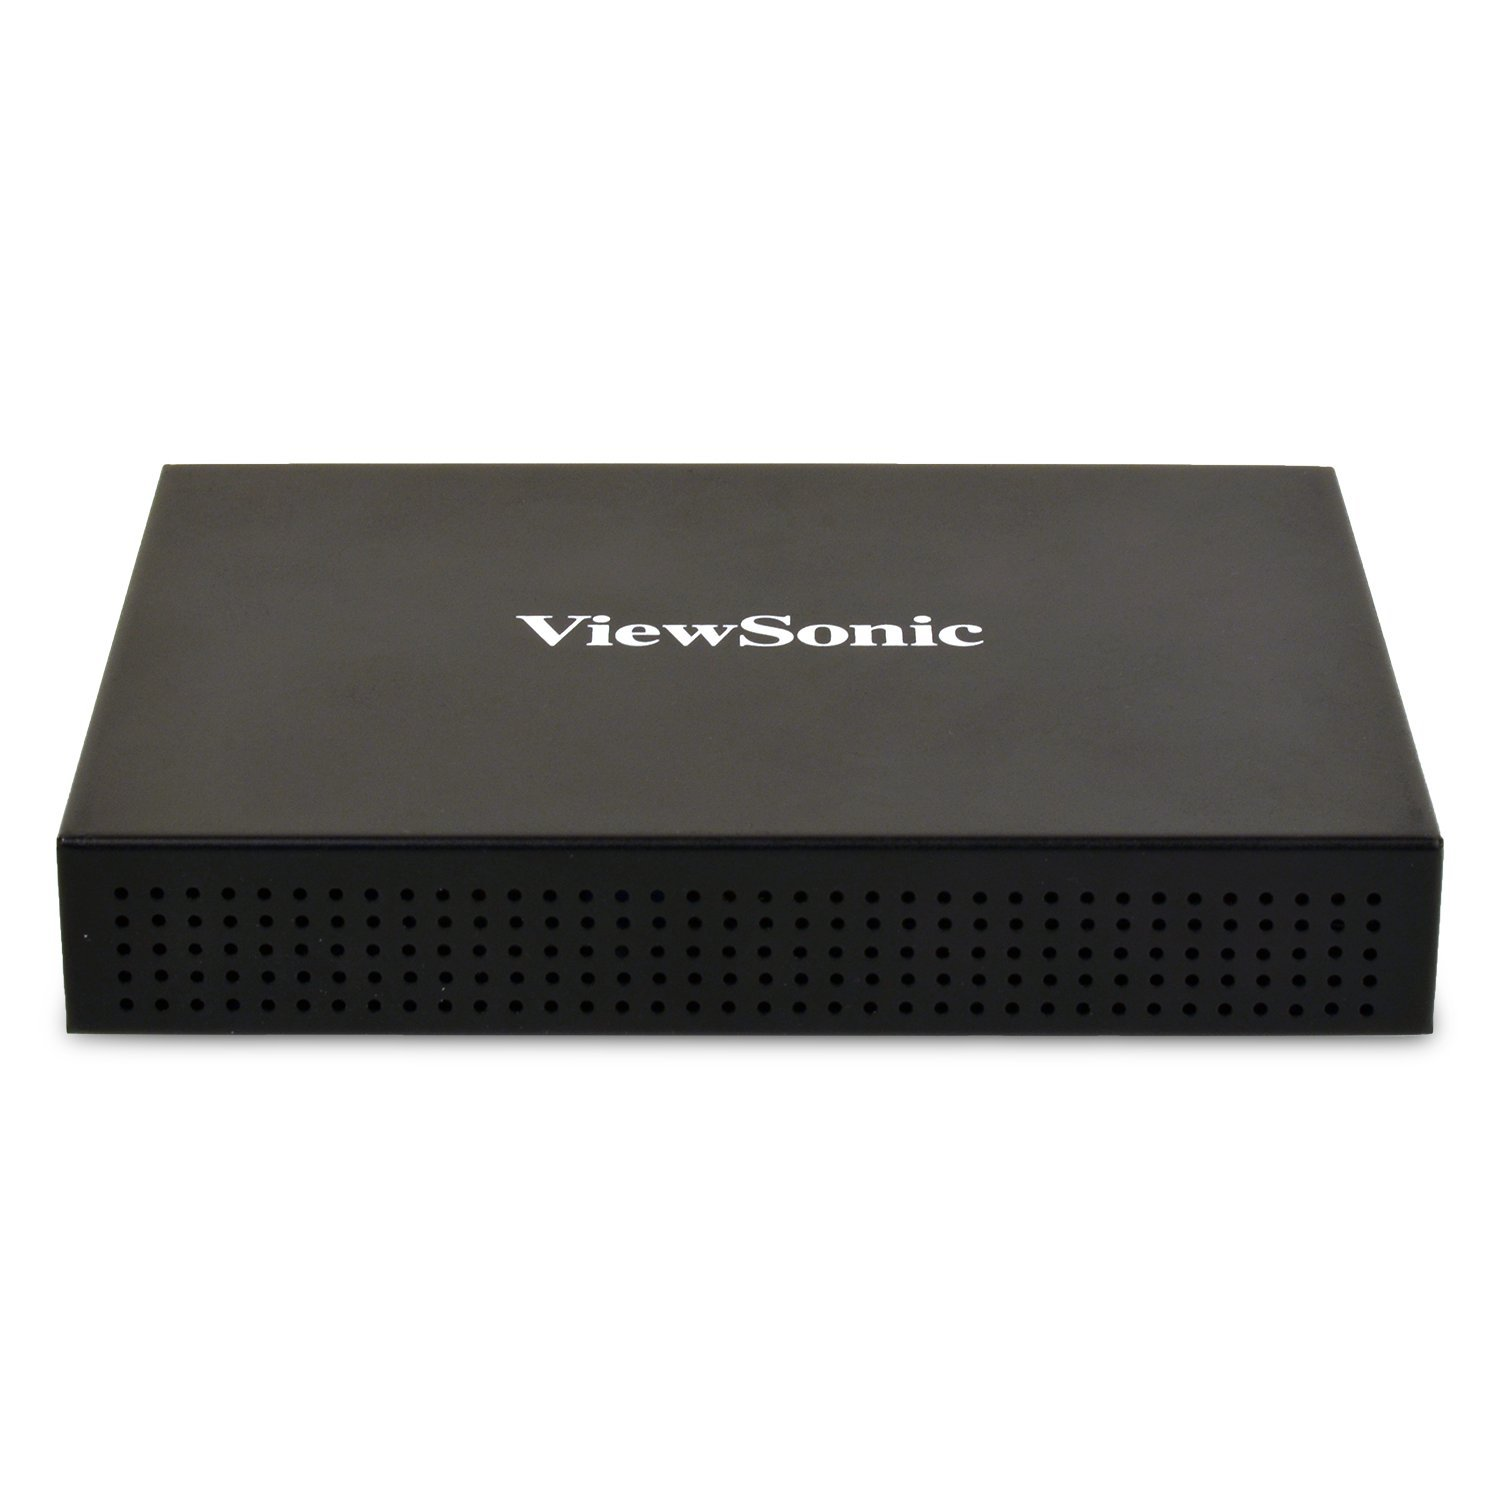 ViewSonic SC-A25X Network Media Player with DisplayIt!Xpress CMS for Digital Signage